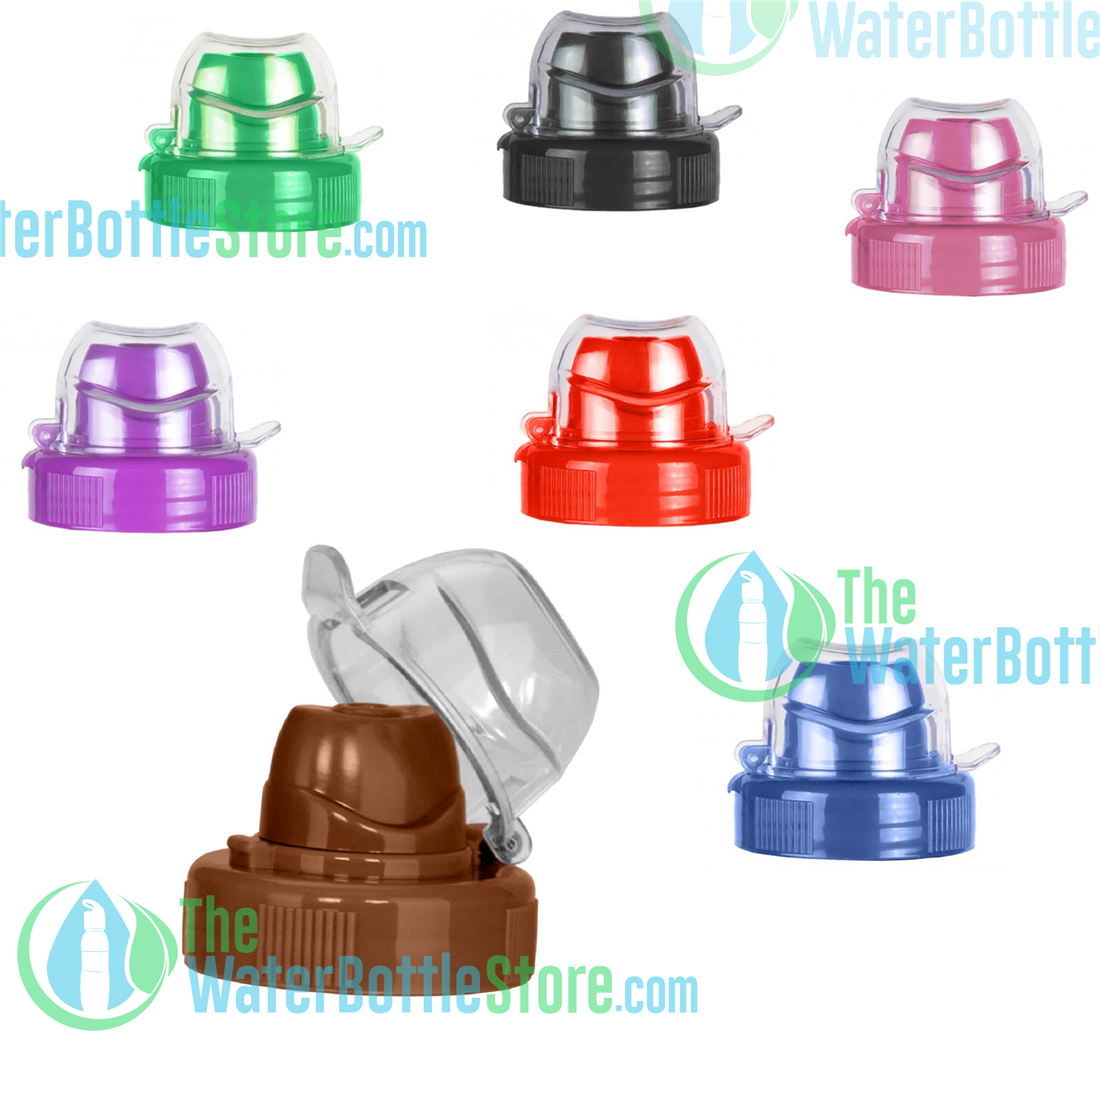 b5f961db97 48mm Sports Replacement Caps Tops for Reusable Water Bottles |  TheWaterBottleStore.com